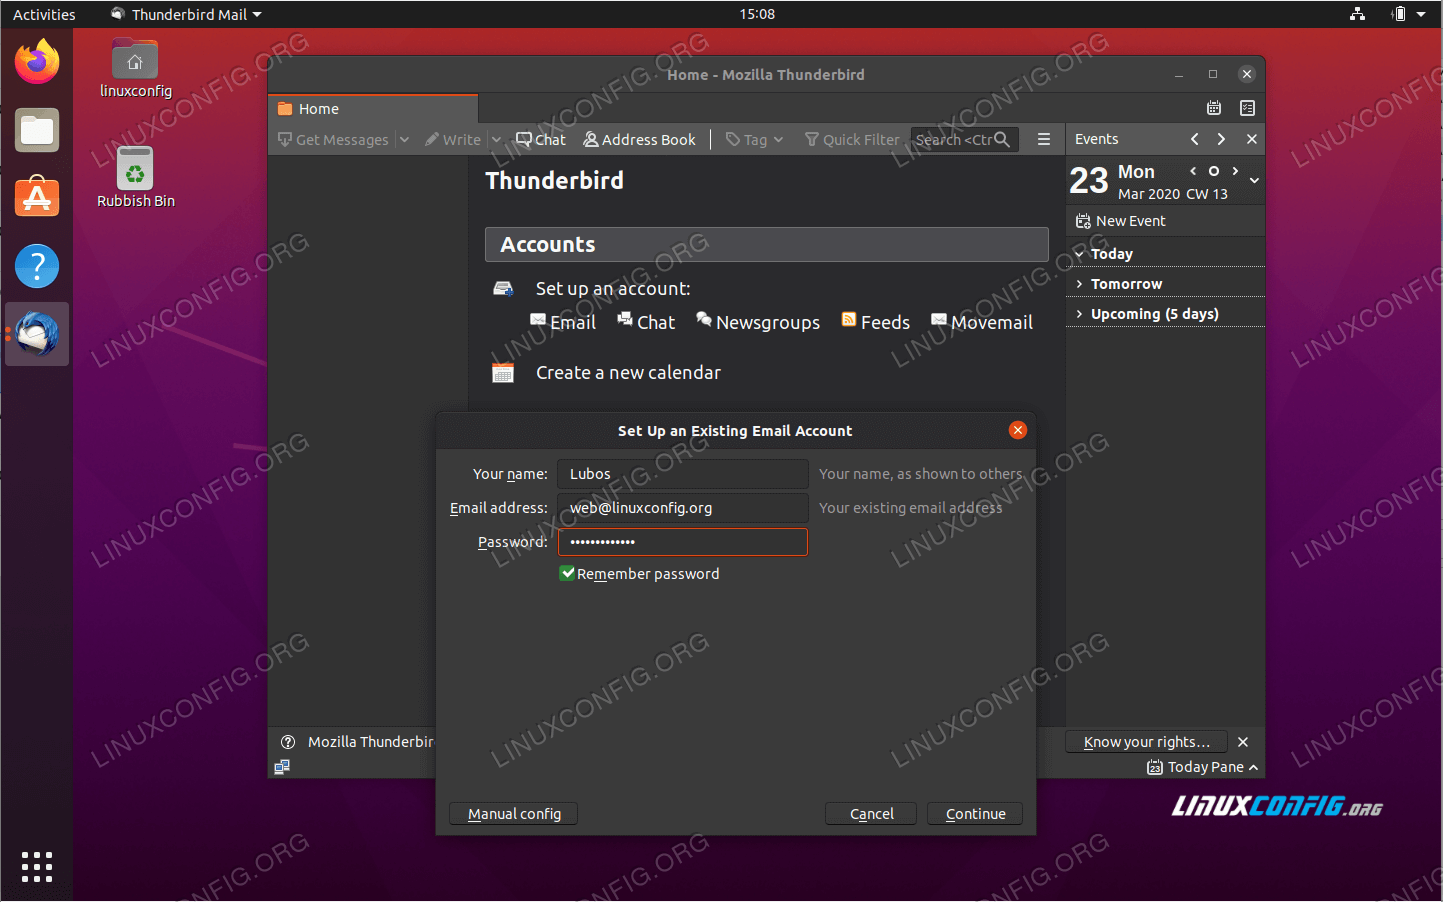 Thunderbird installation on Ubuntu 20.04 Focal Fossa